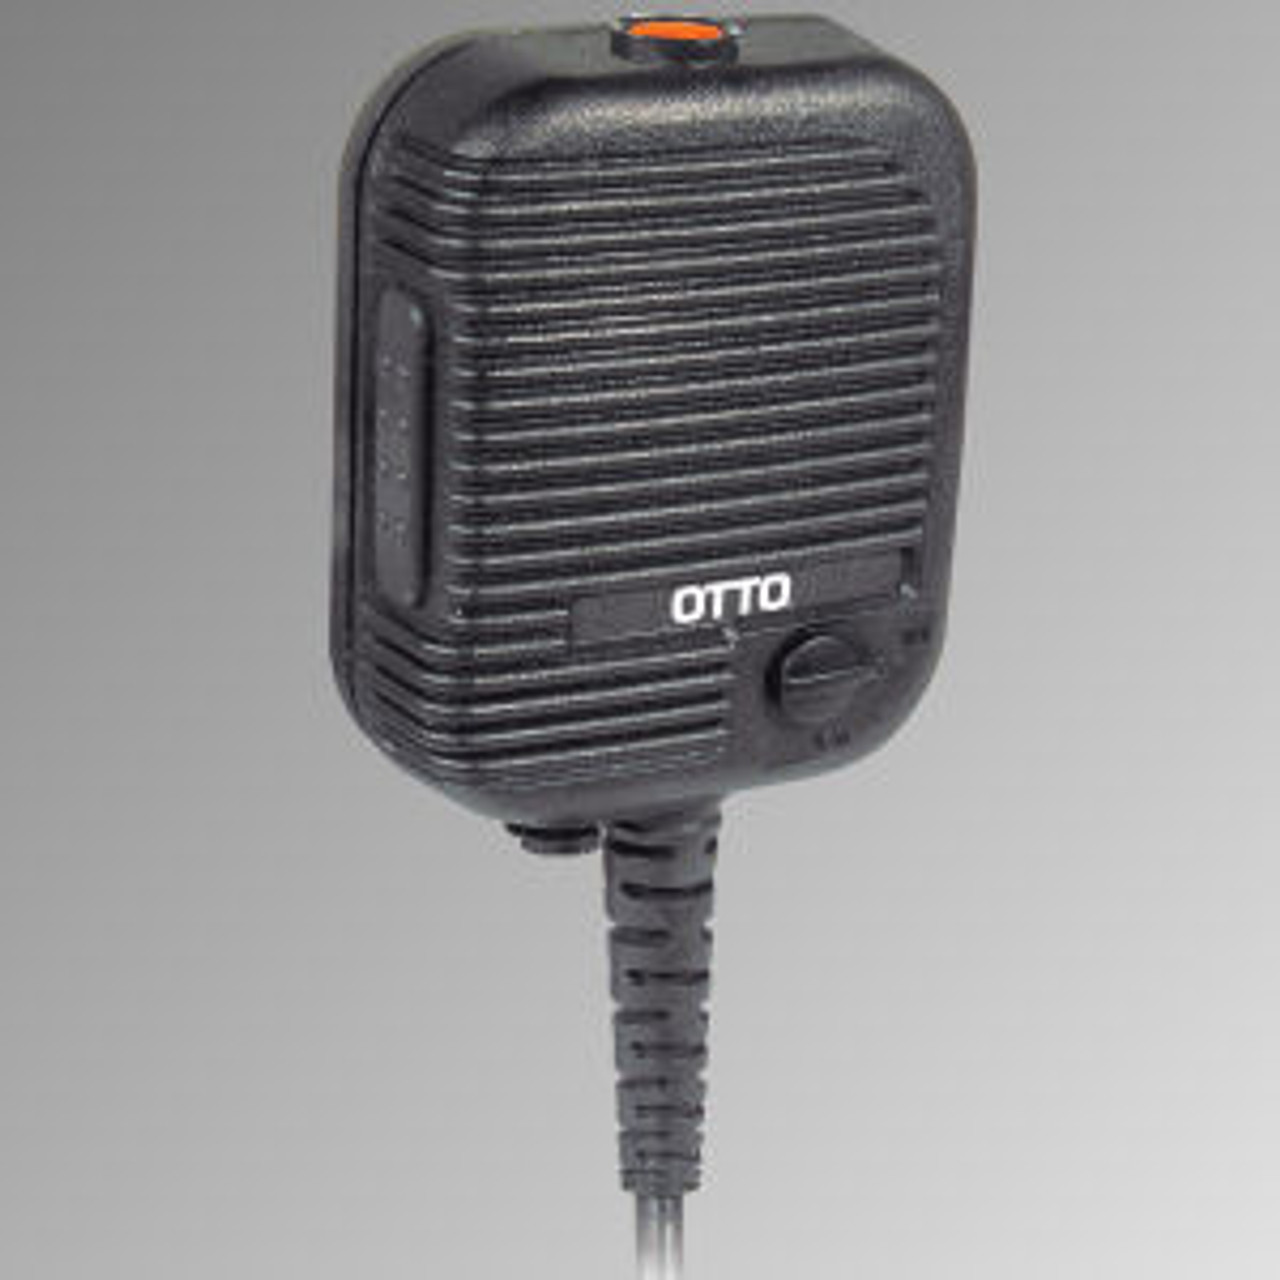 Otto Evolution Mic For Bendix King (All Models)